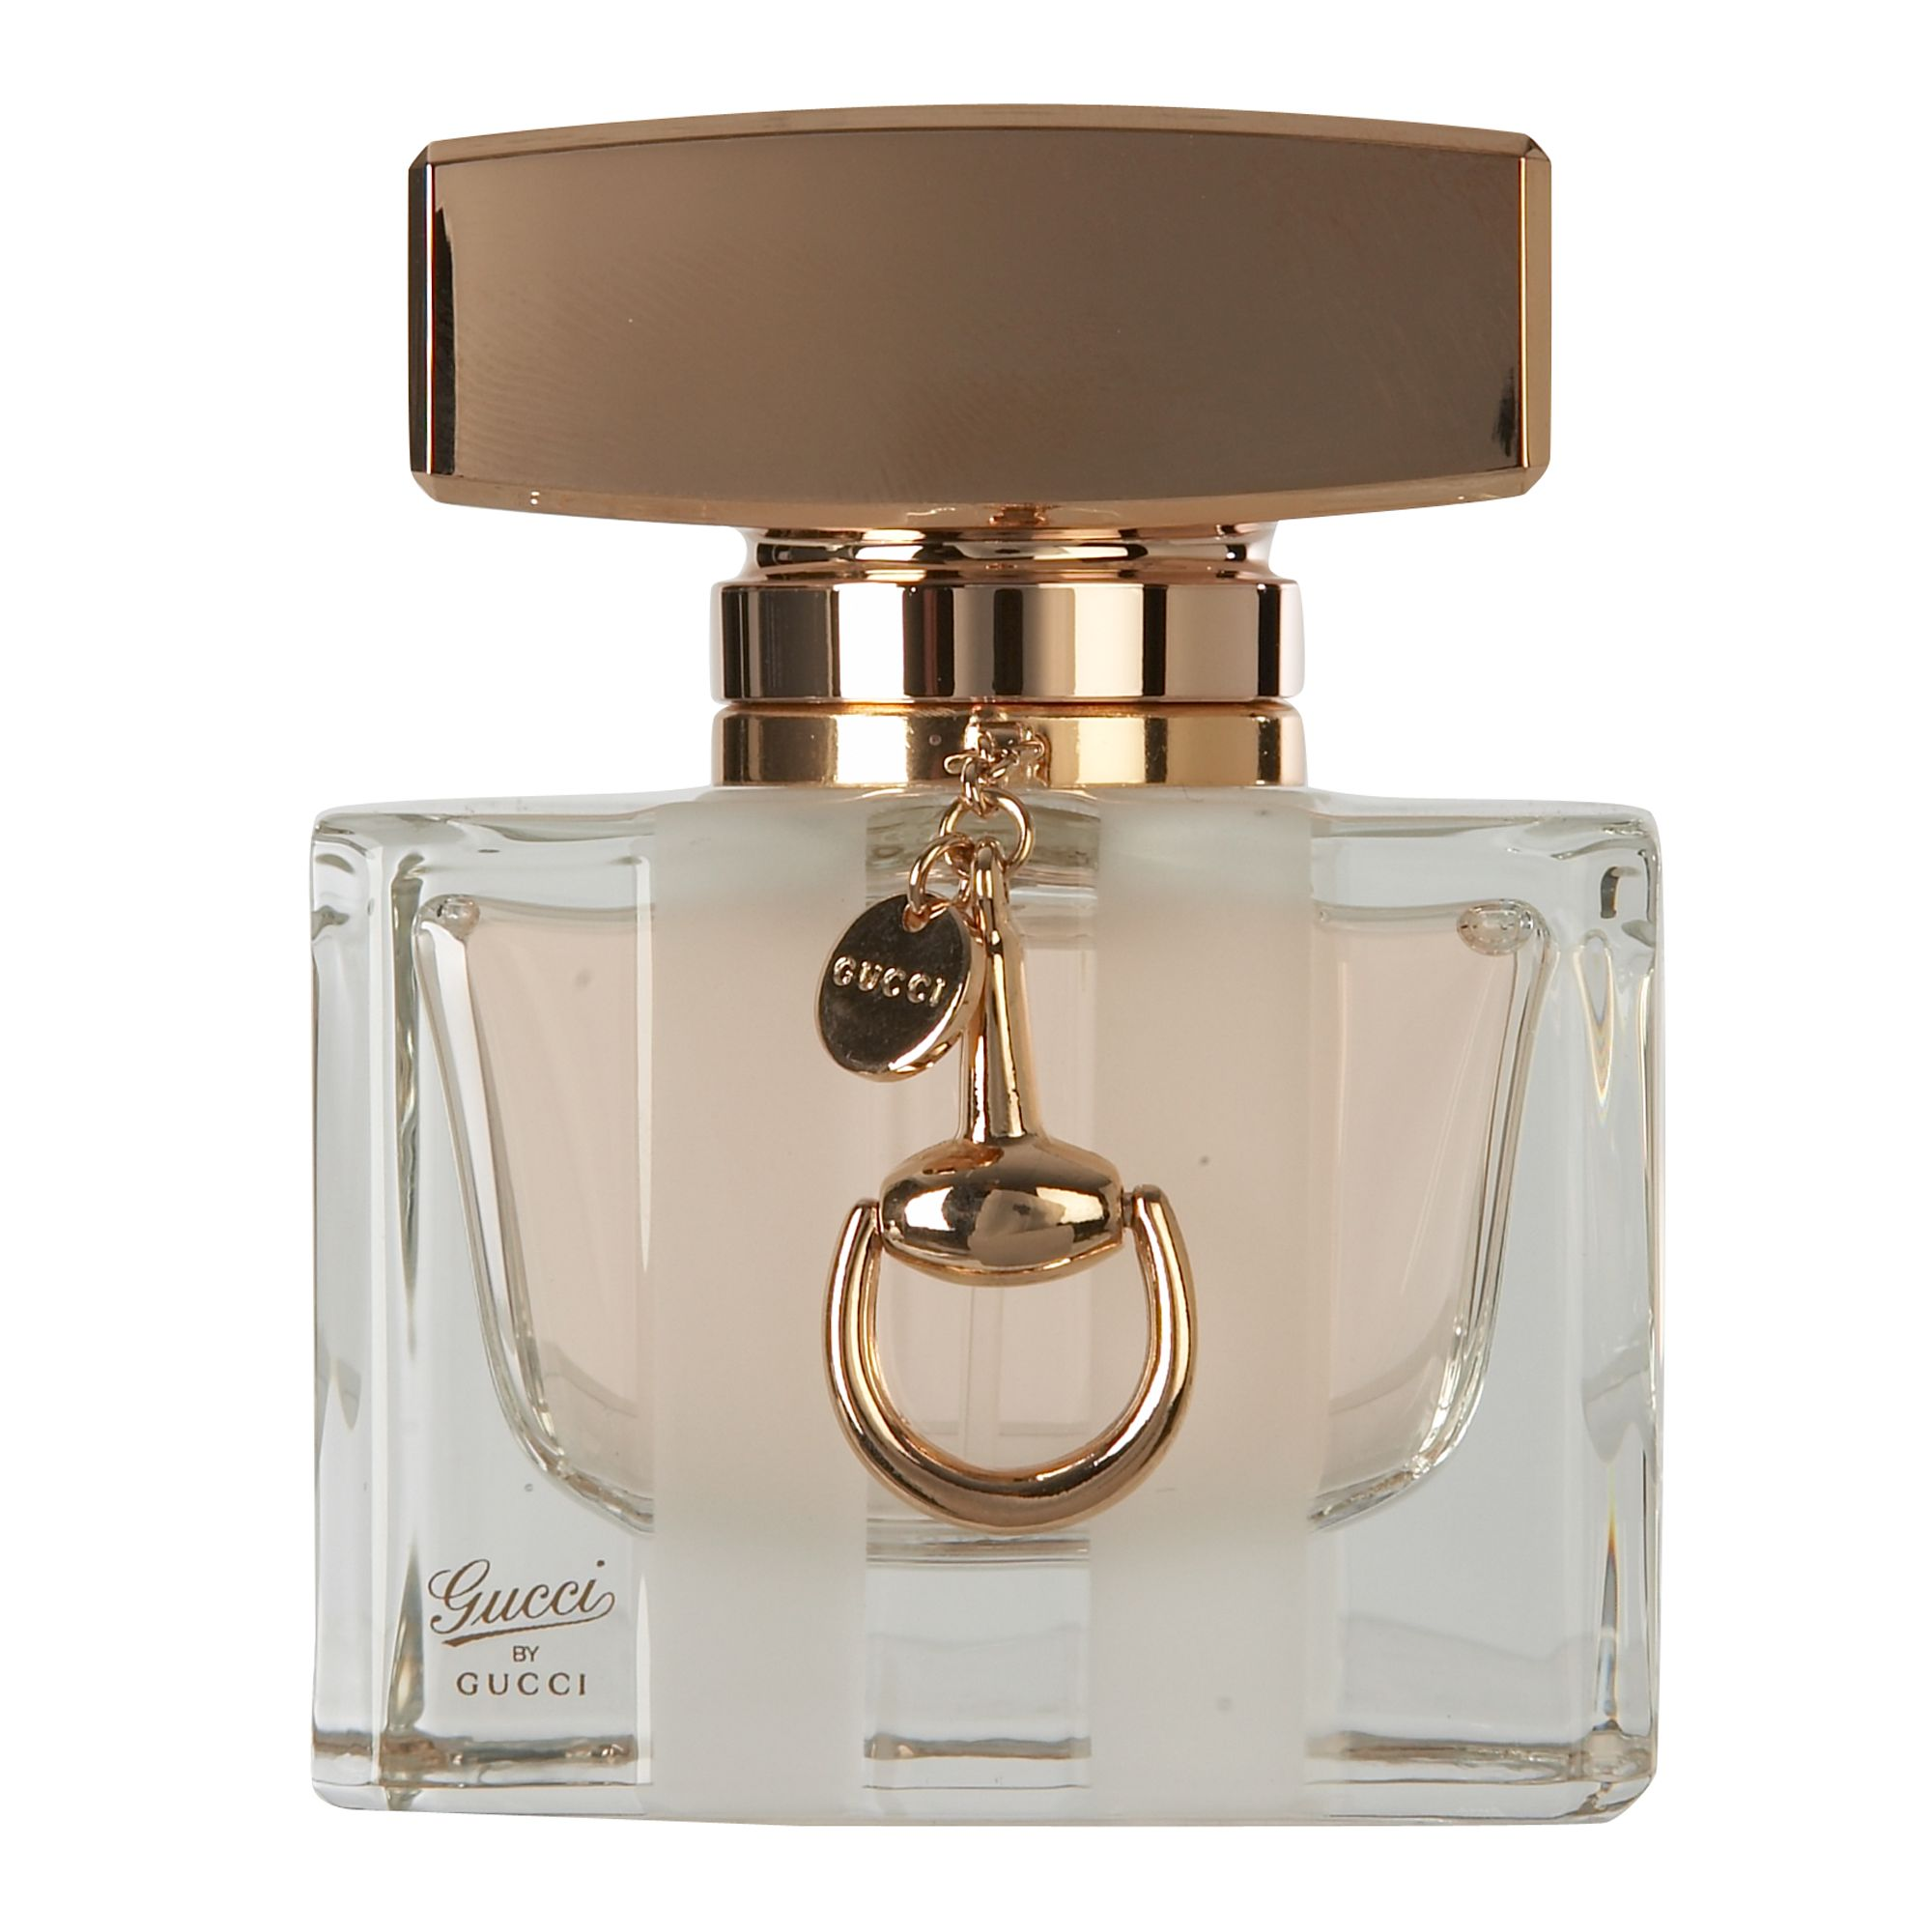 Gucci by Gucci eau de toilette